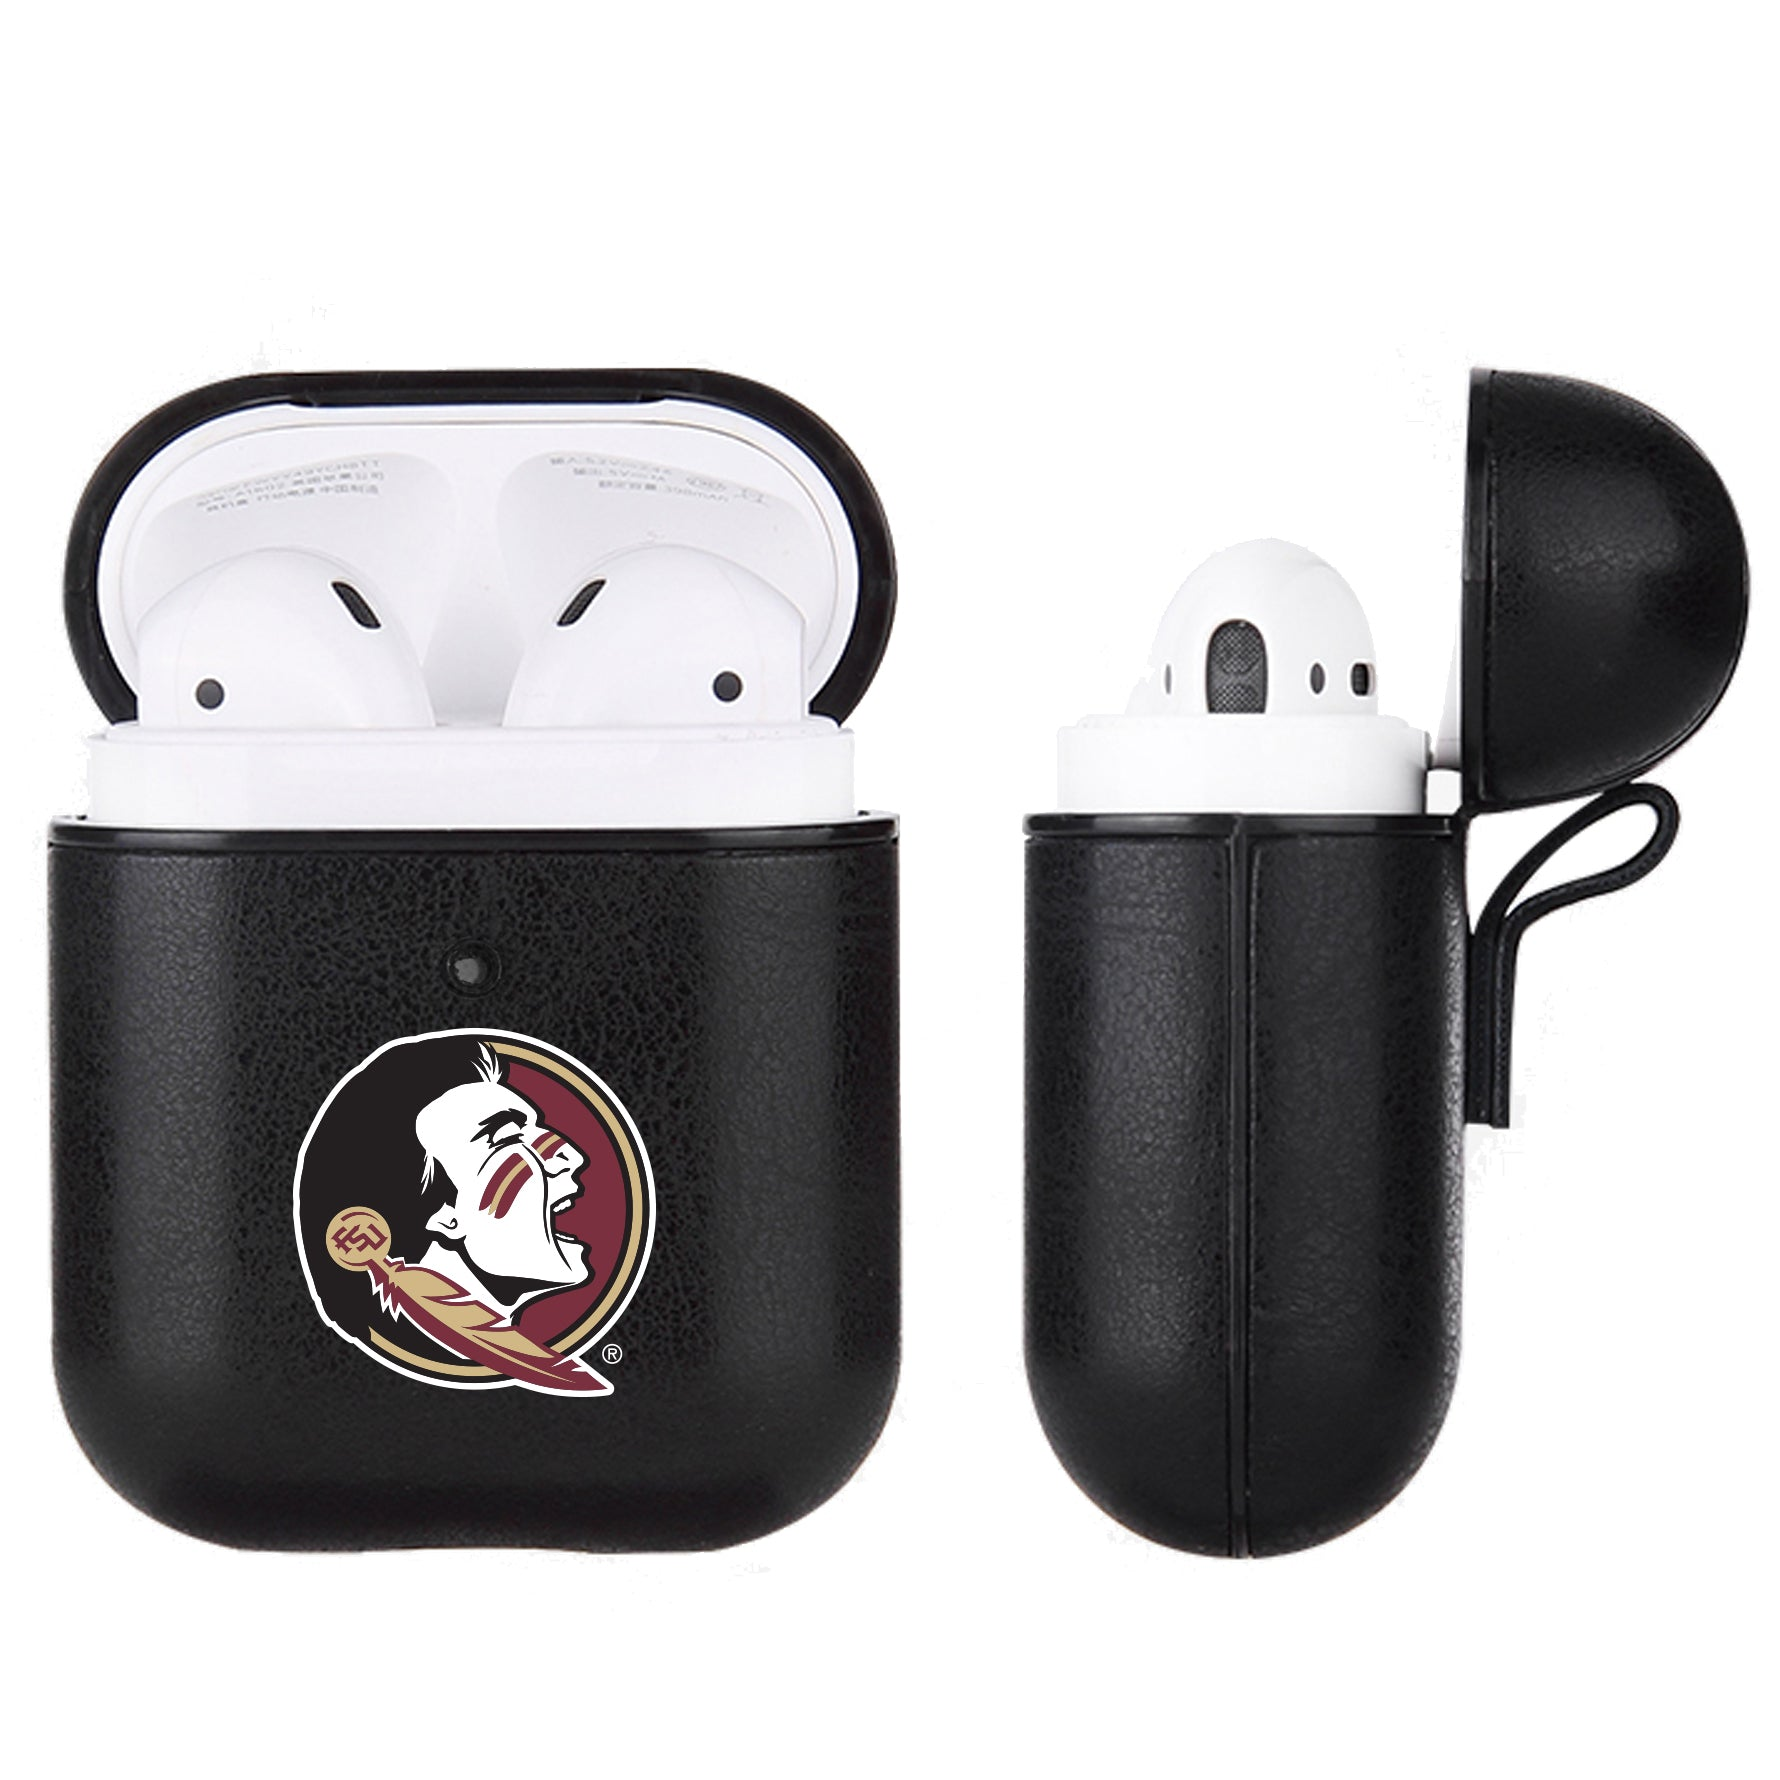 Florida State Seminoles Primary Mark design Black Apple Air Pod Leather Case